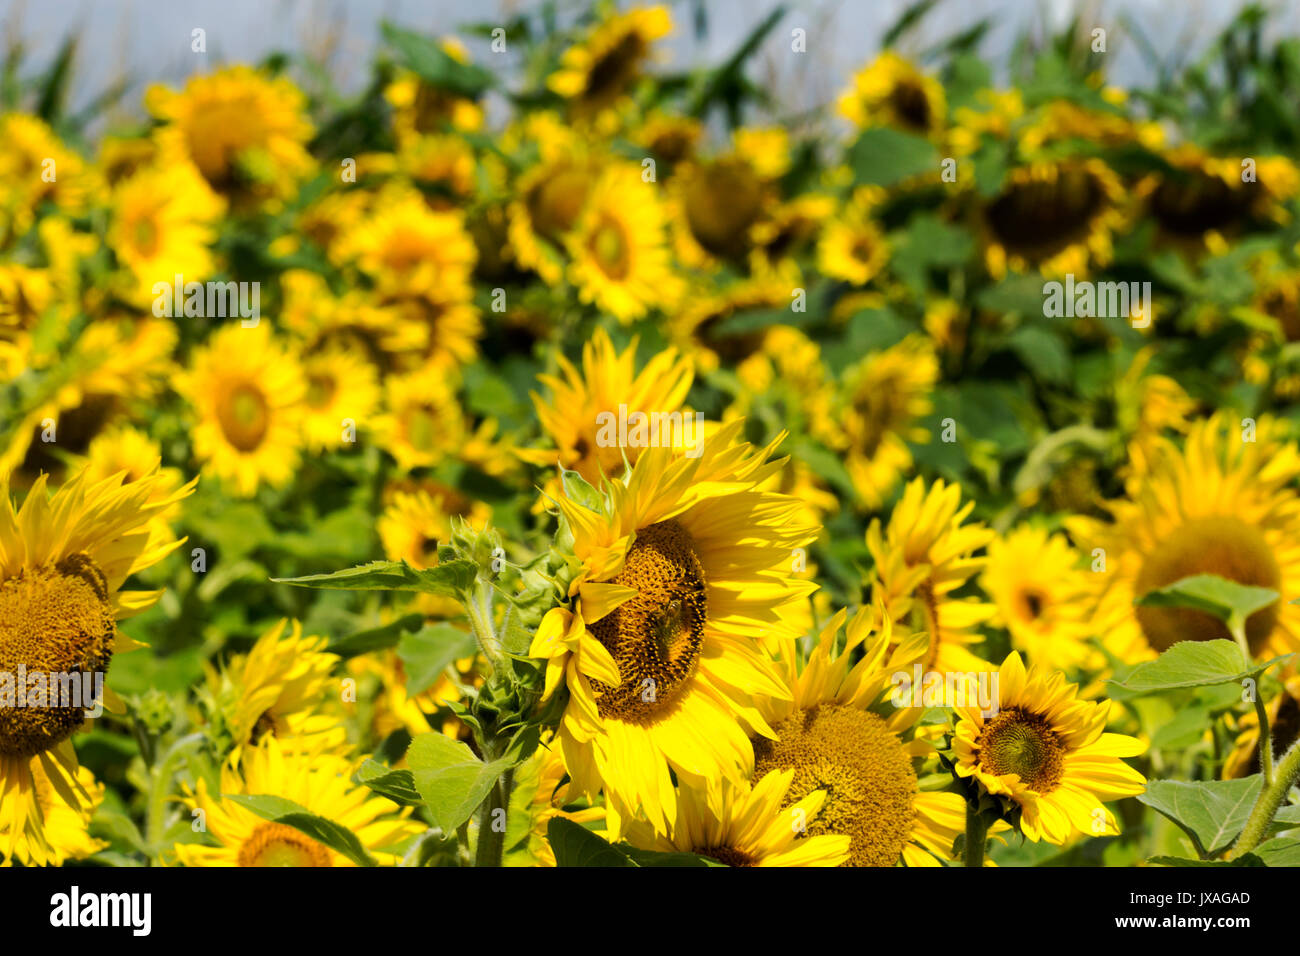 Beautiful sunflower with a  butterfly - Stock Image